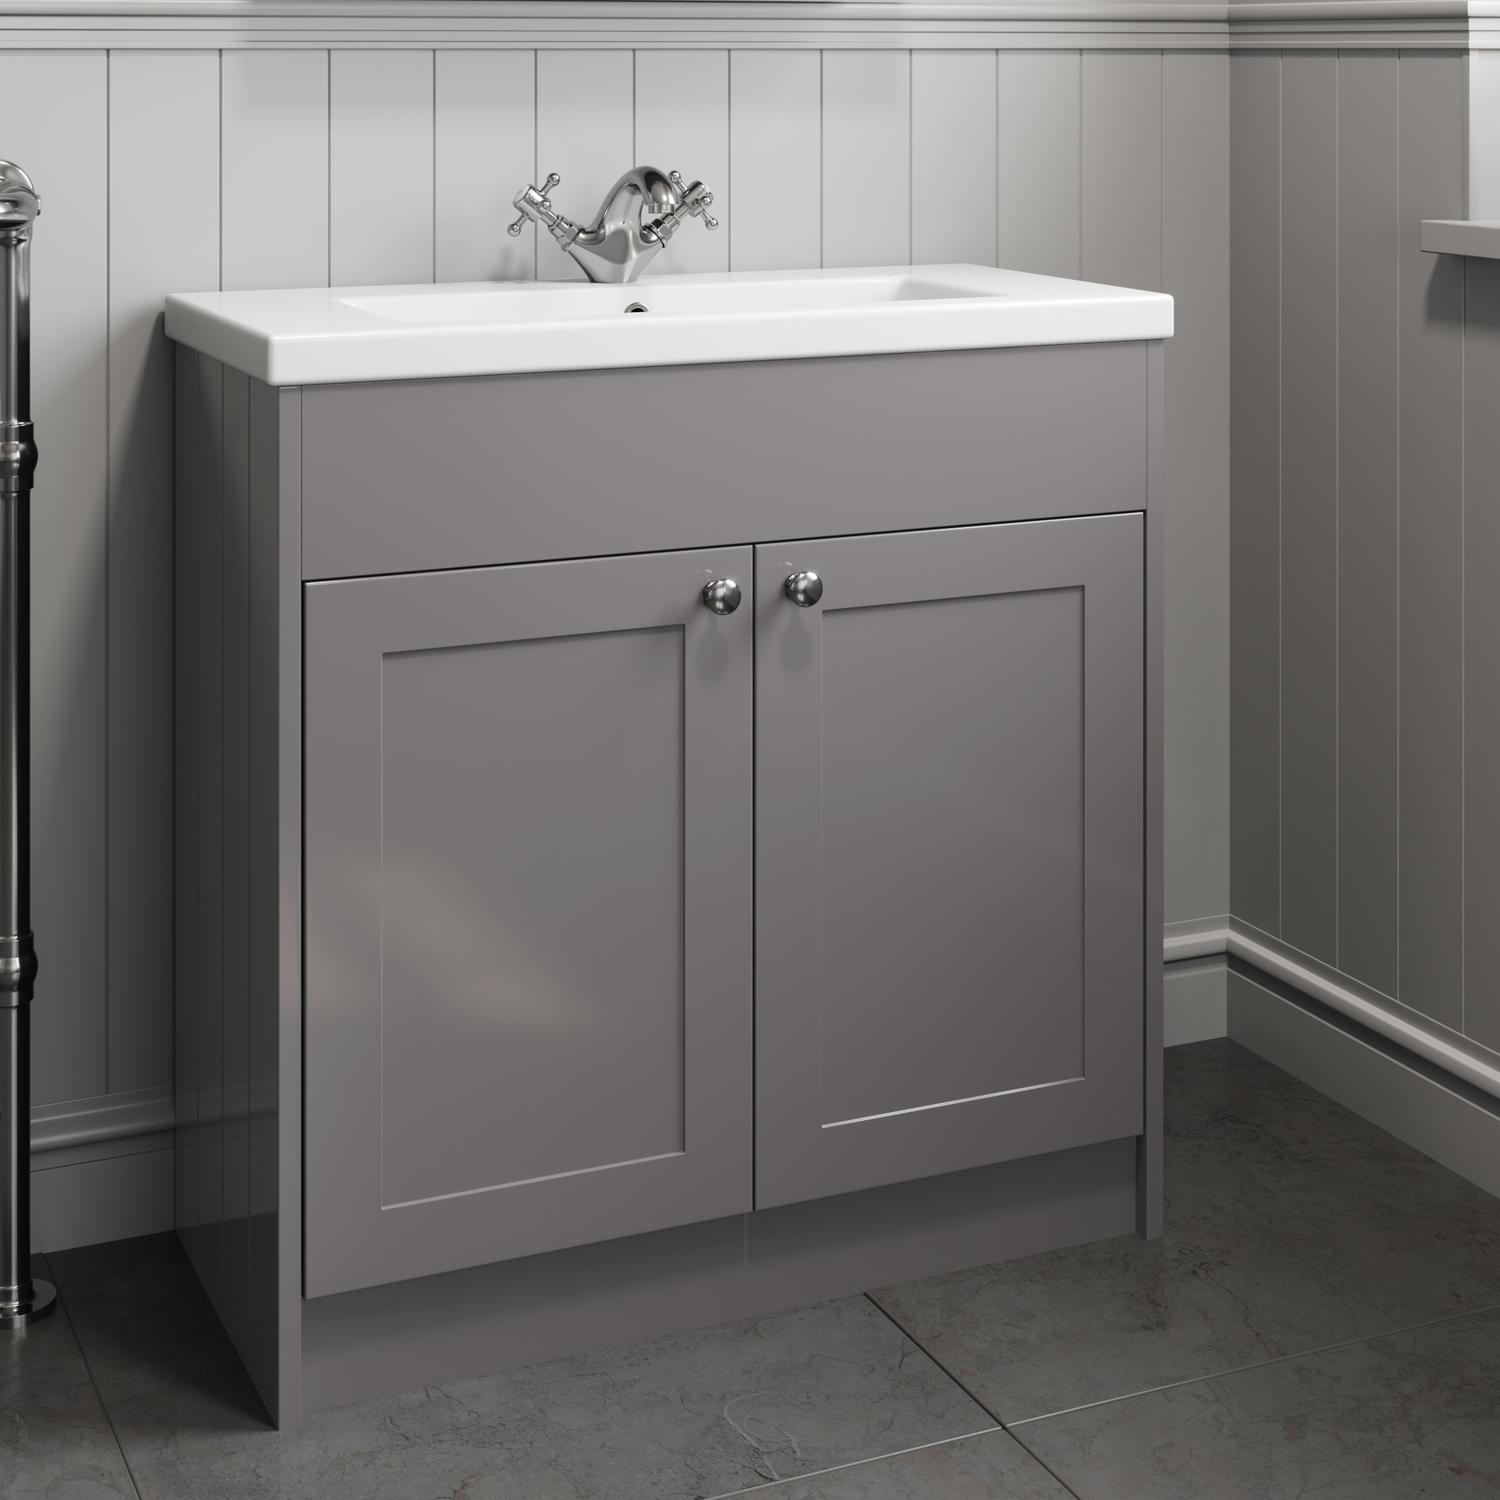 Details About 800mm Bathroom Vanity Unit Basin Sink Storage Cabinet Furniture Grey Traditional inside size 1500 X 1500